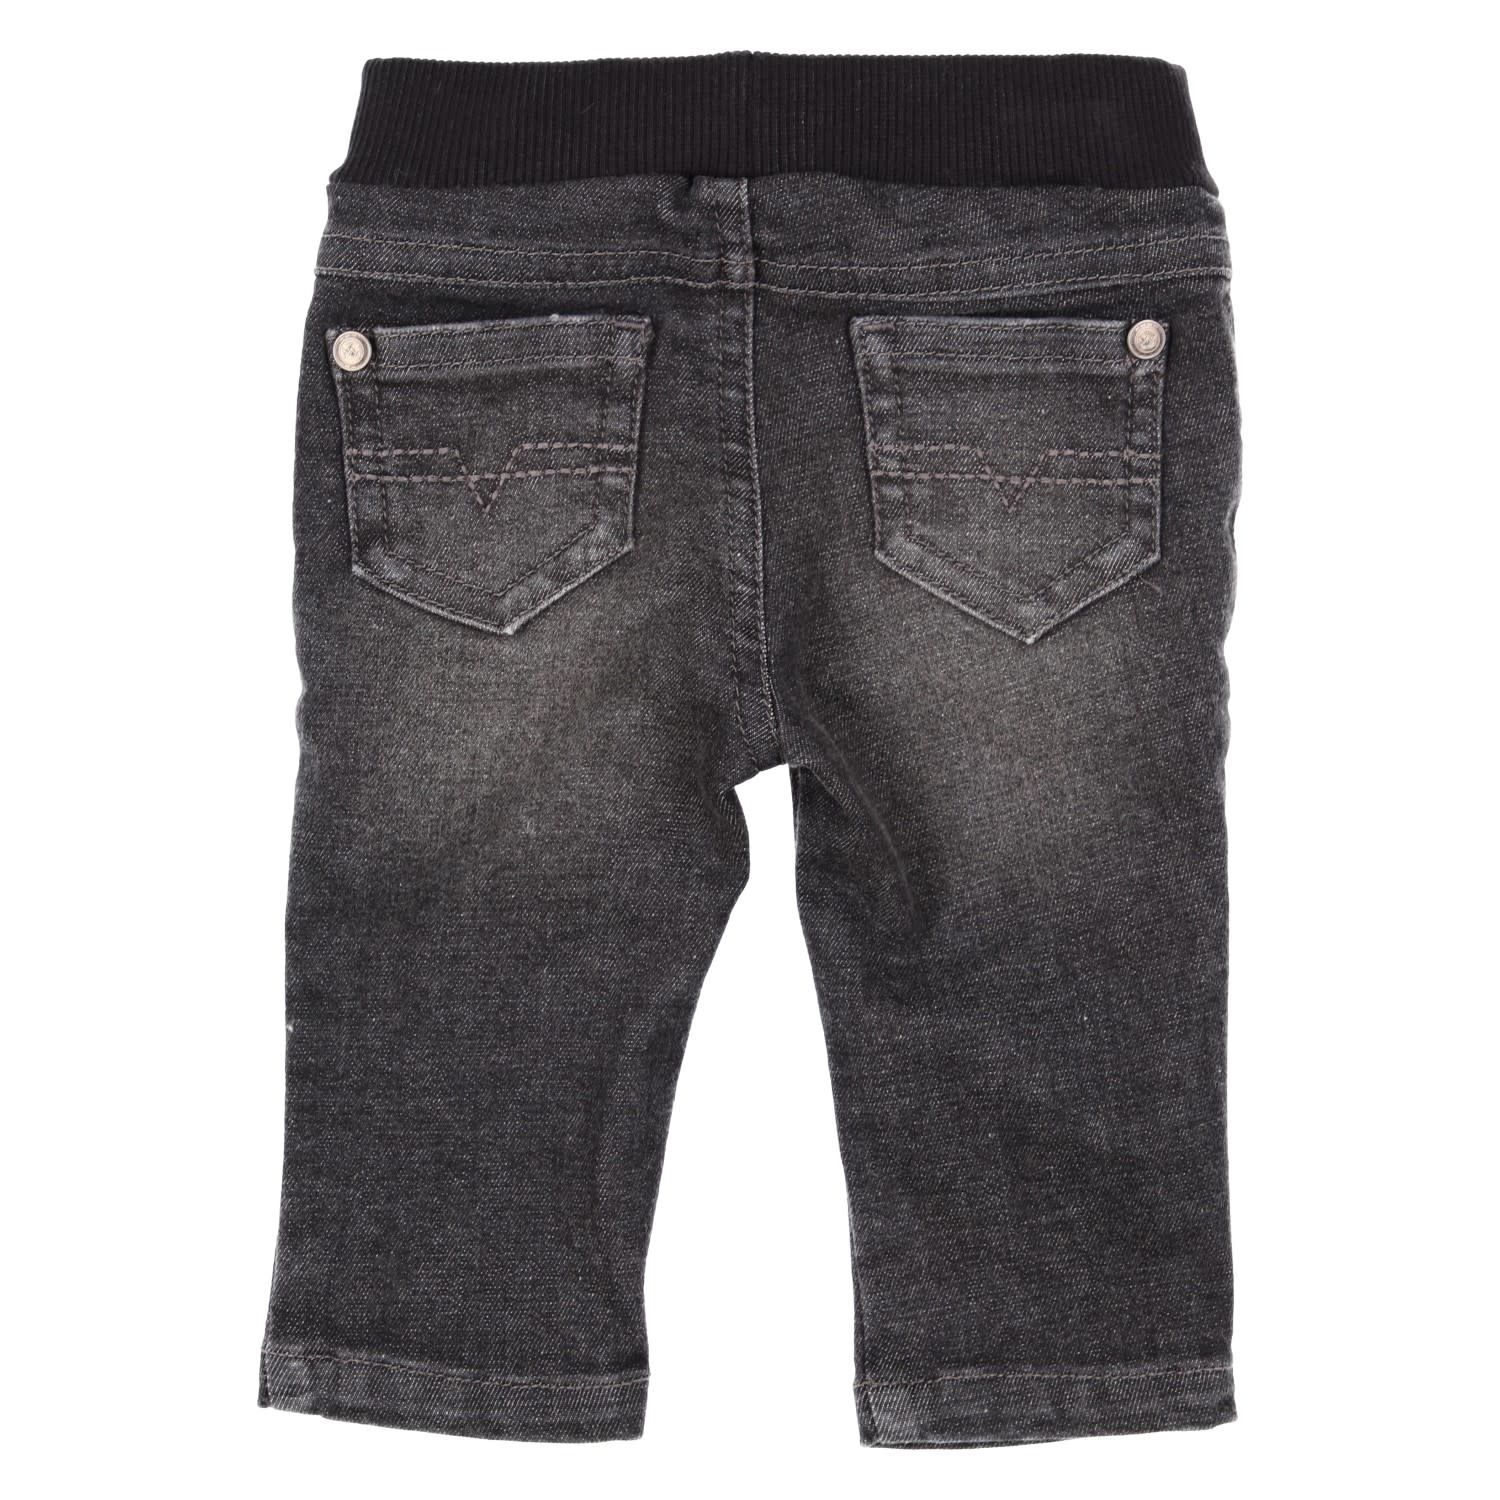 Gymp Jeans Anthracite Tricot Board